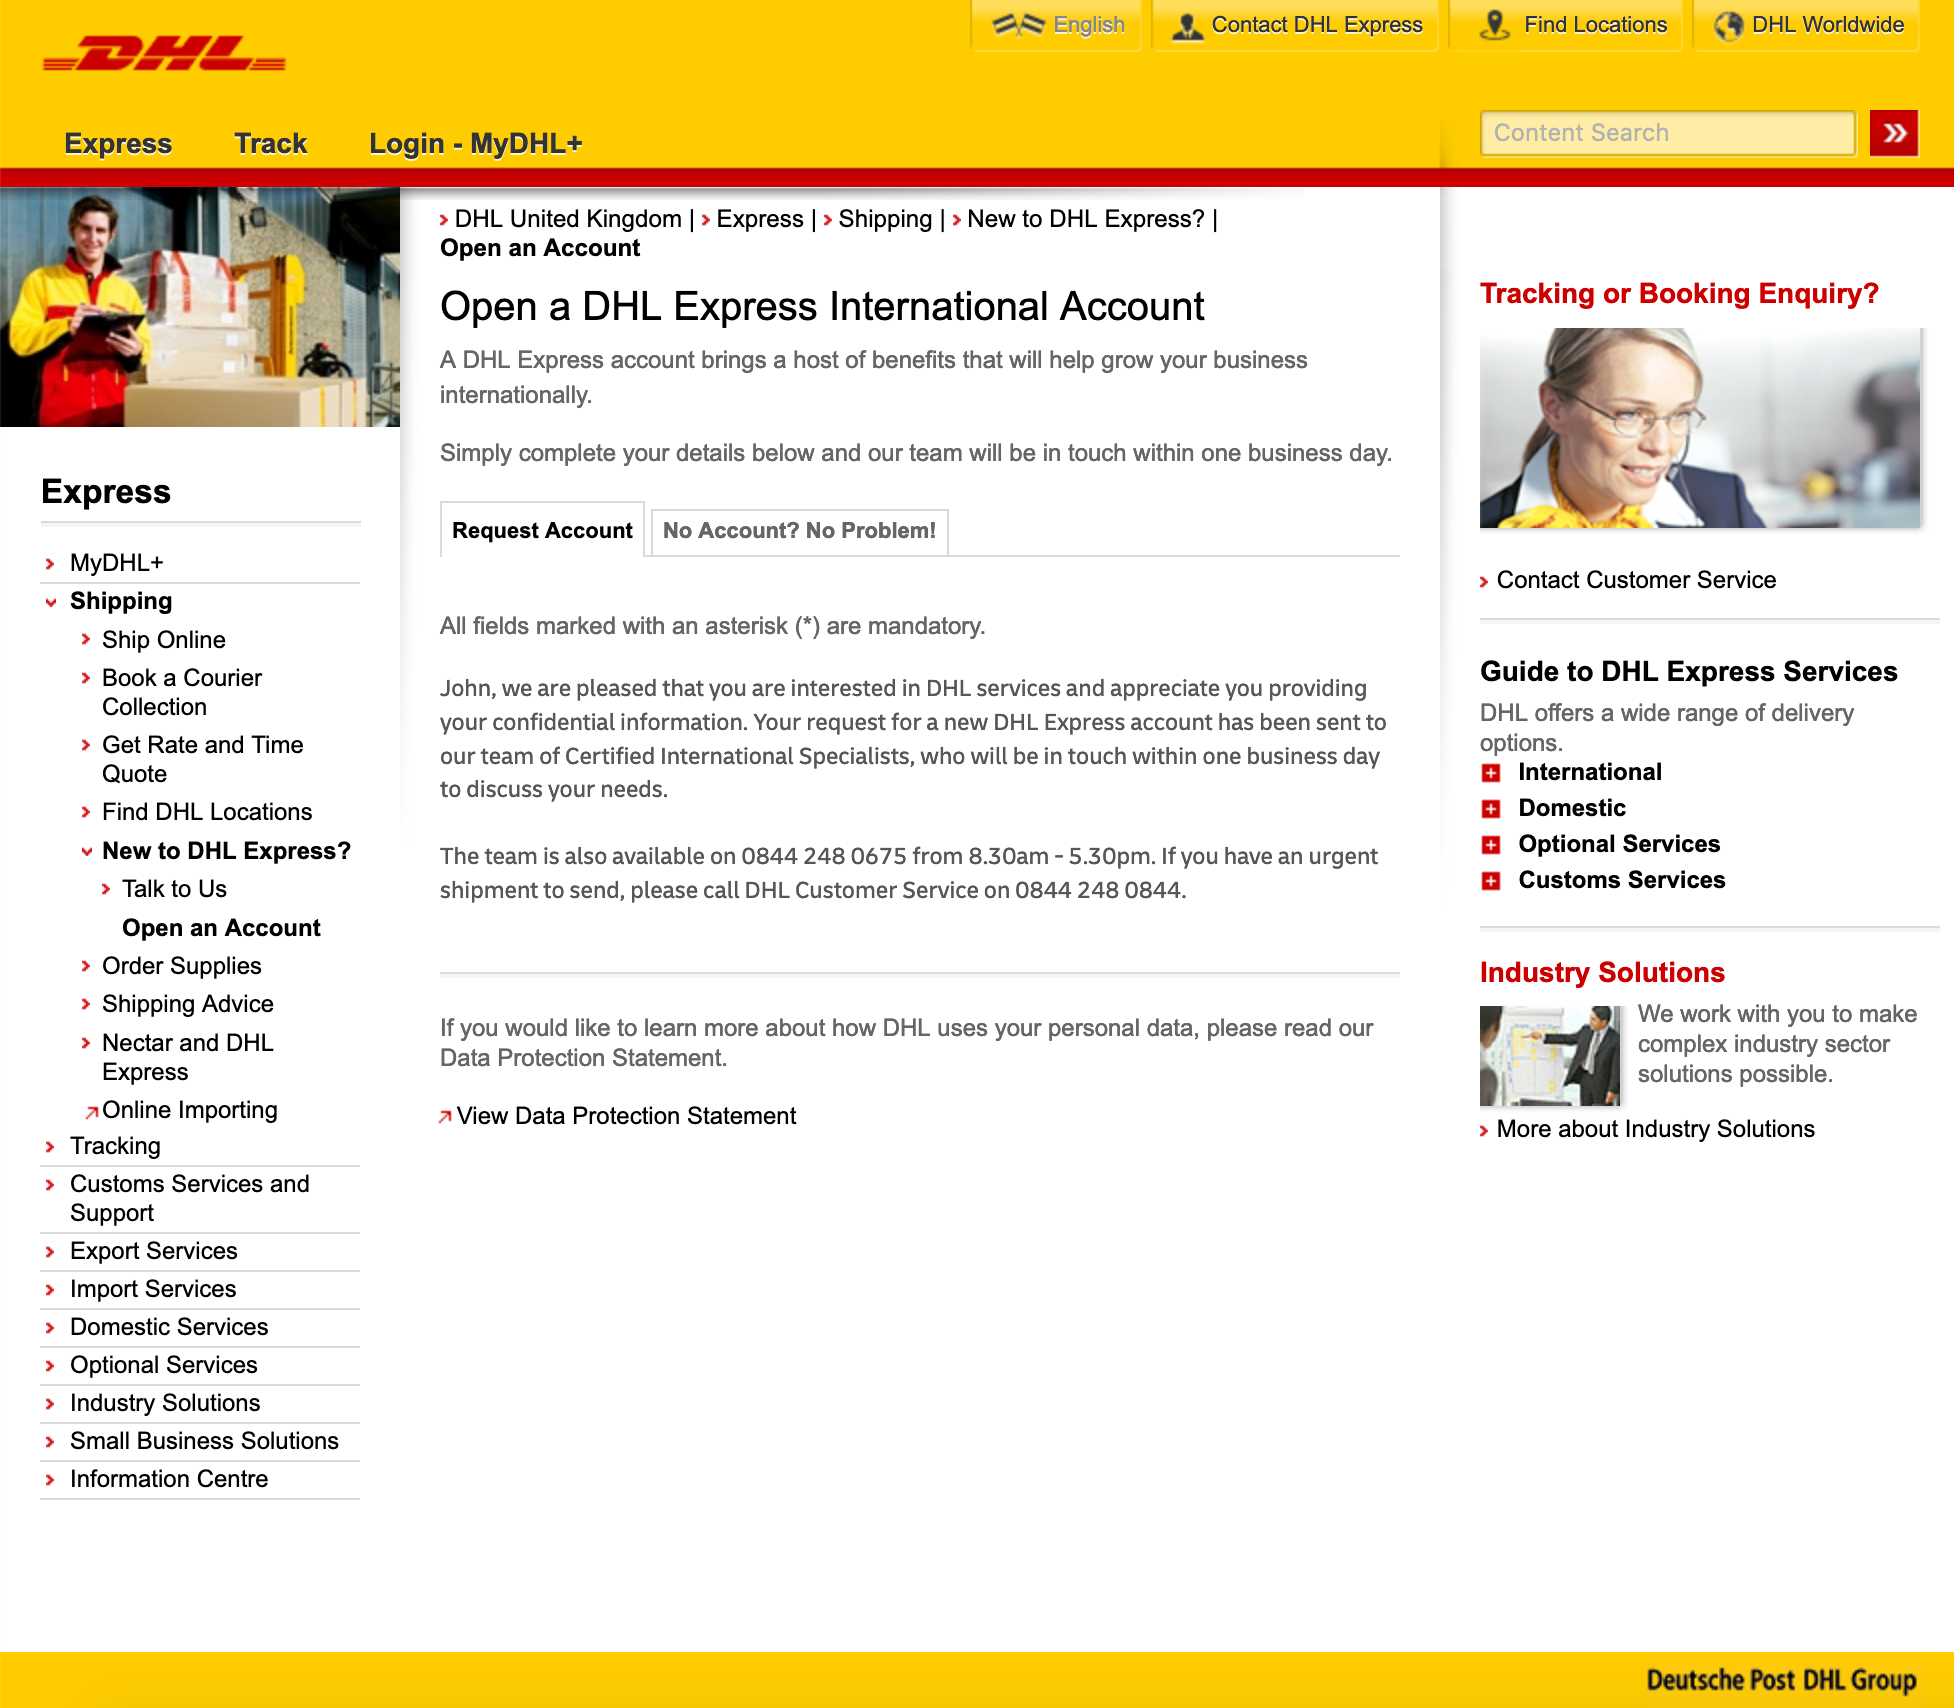 DHL Express - How to create an account? - DHL Express request account form submitted